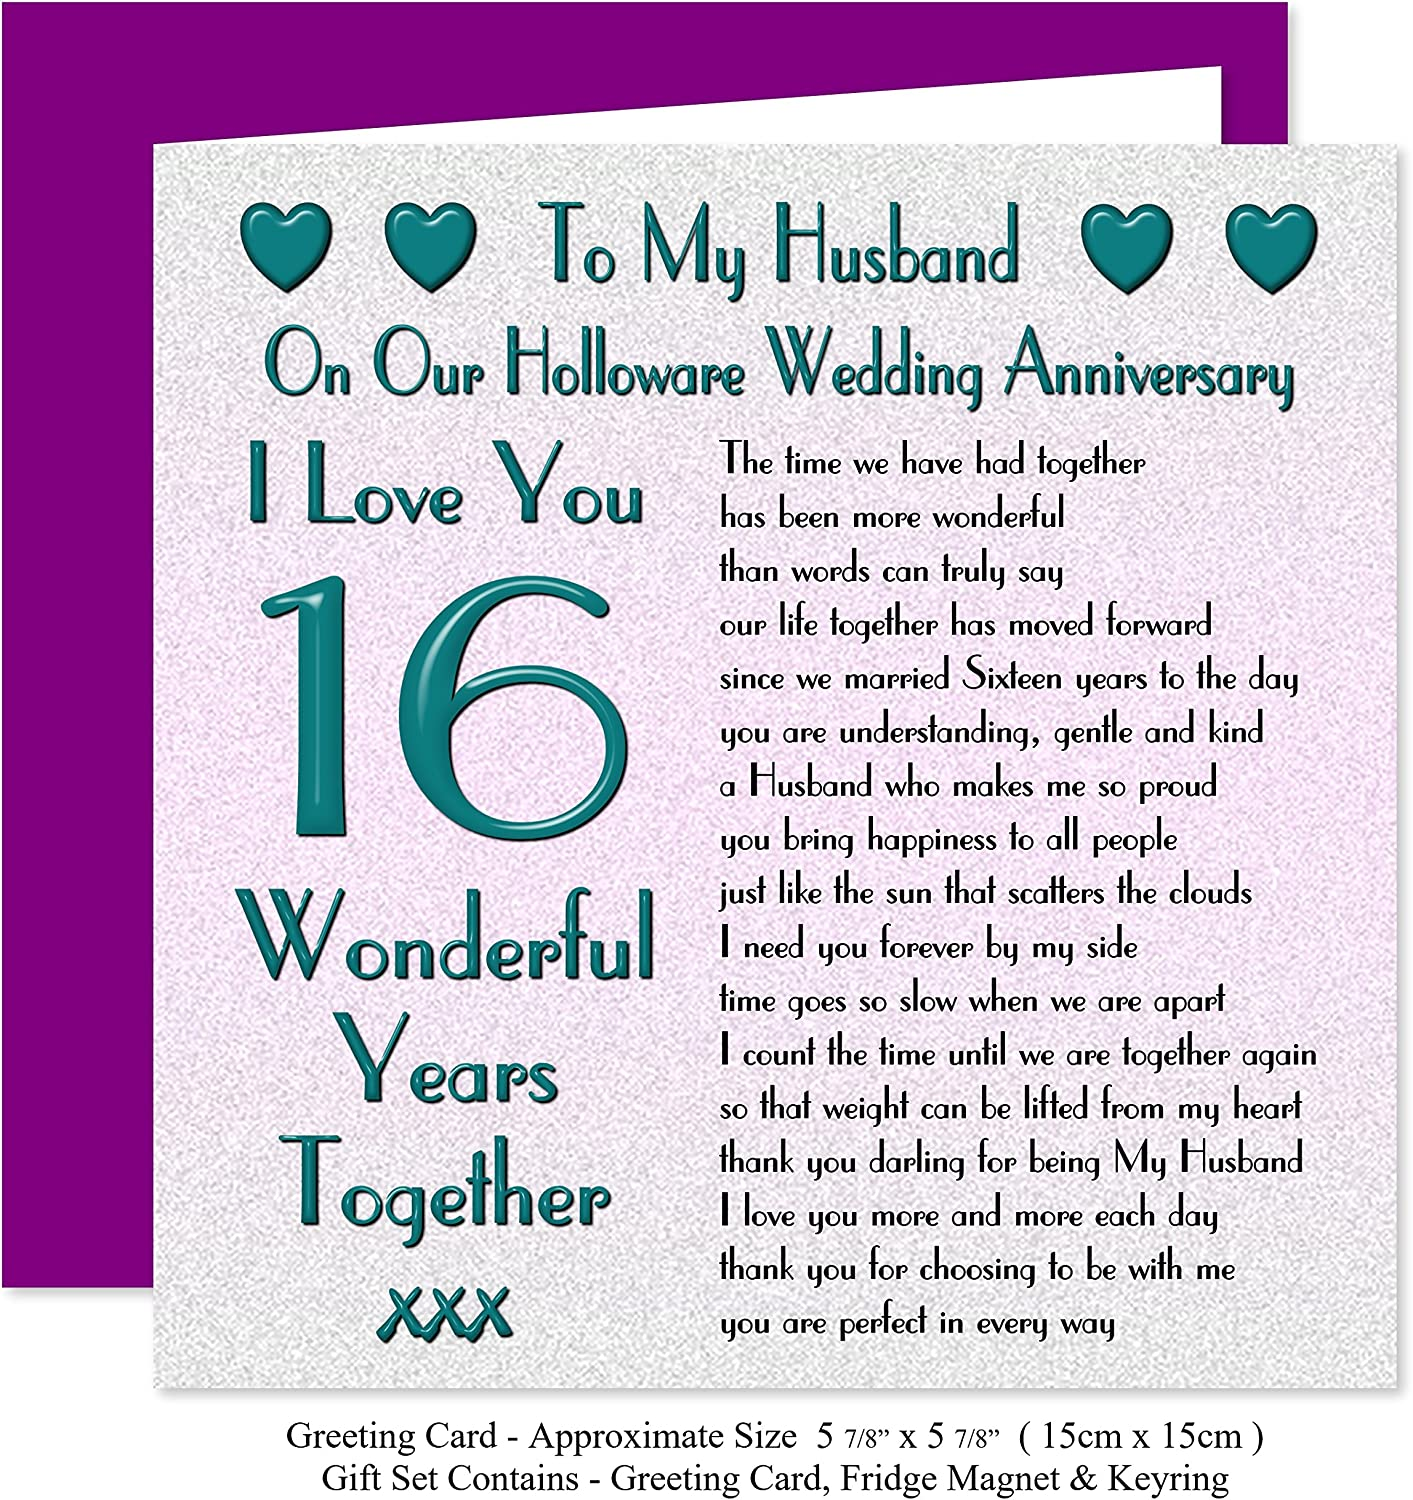 My Husband 16th Wedding Anniversary Gift Set Card Keyring Fridge Magnet Present On Our Holloware Anniversary 16 Years Sentimental Verse I Love You Amazon Co Uk Office Products